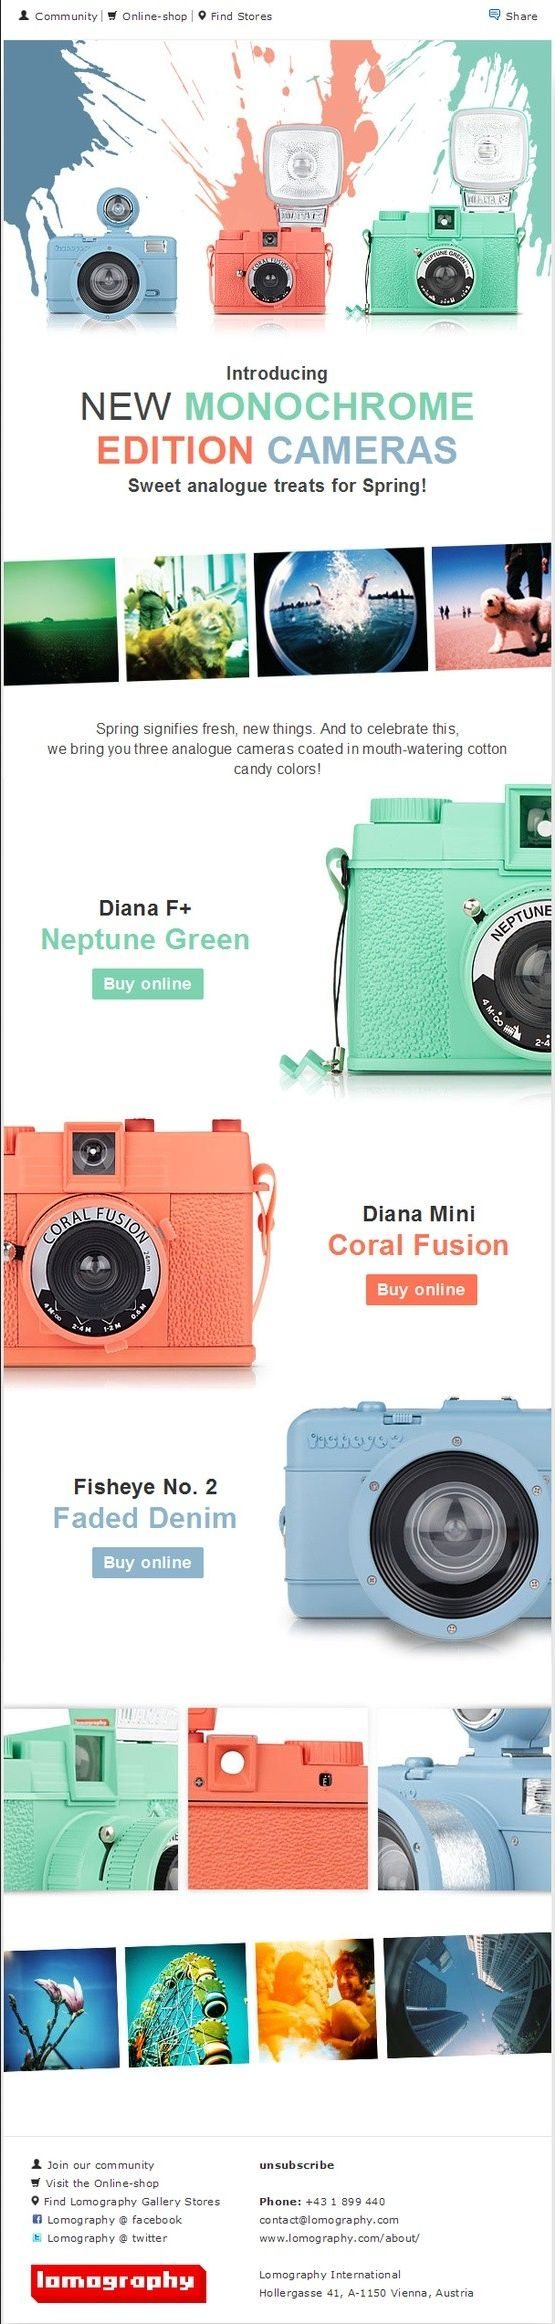 Lomography International - Newsletter - Beautiful Email Newsletters